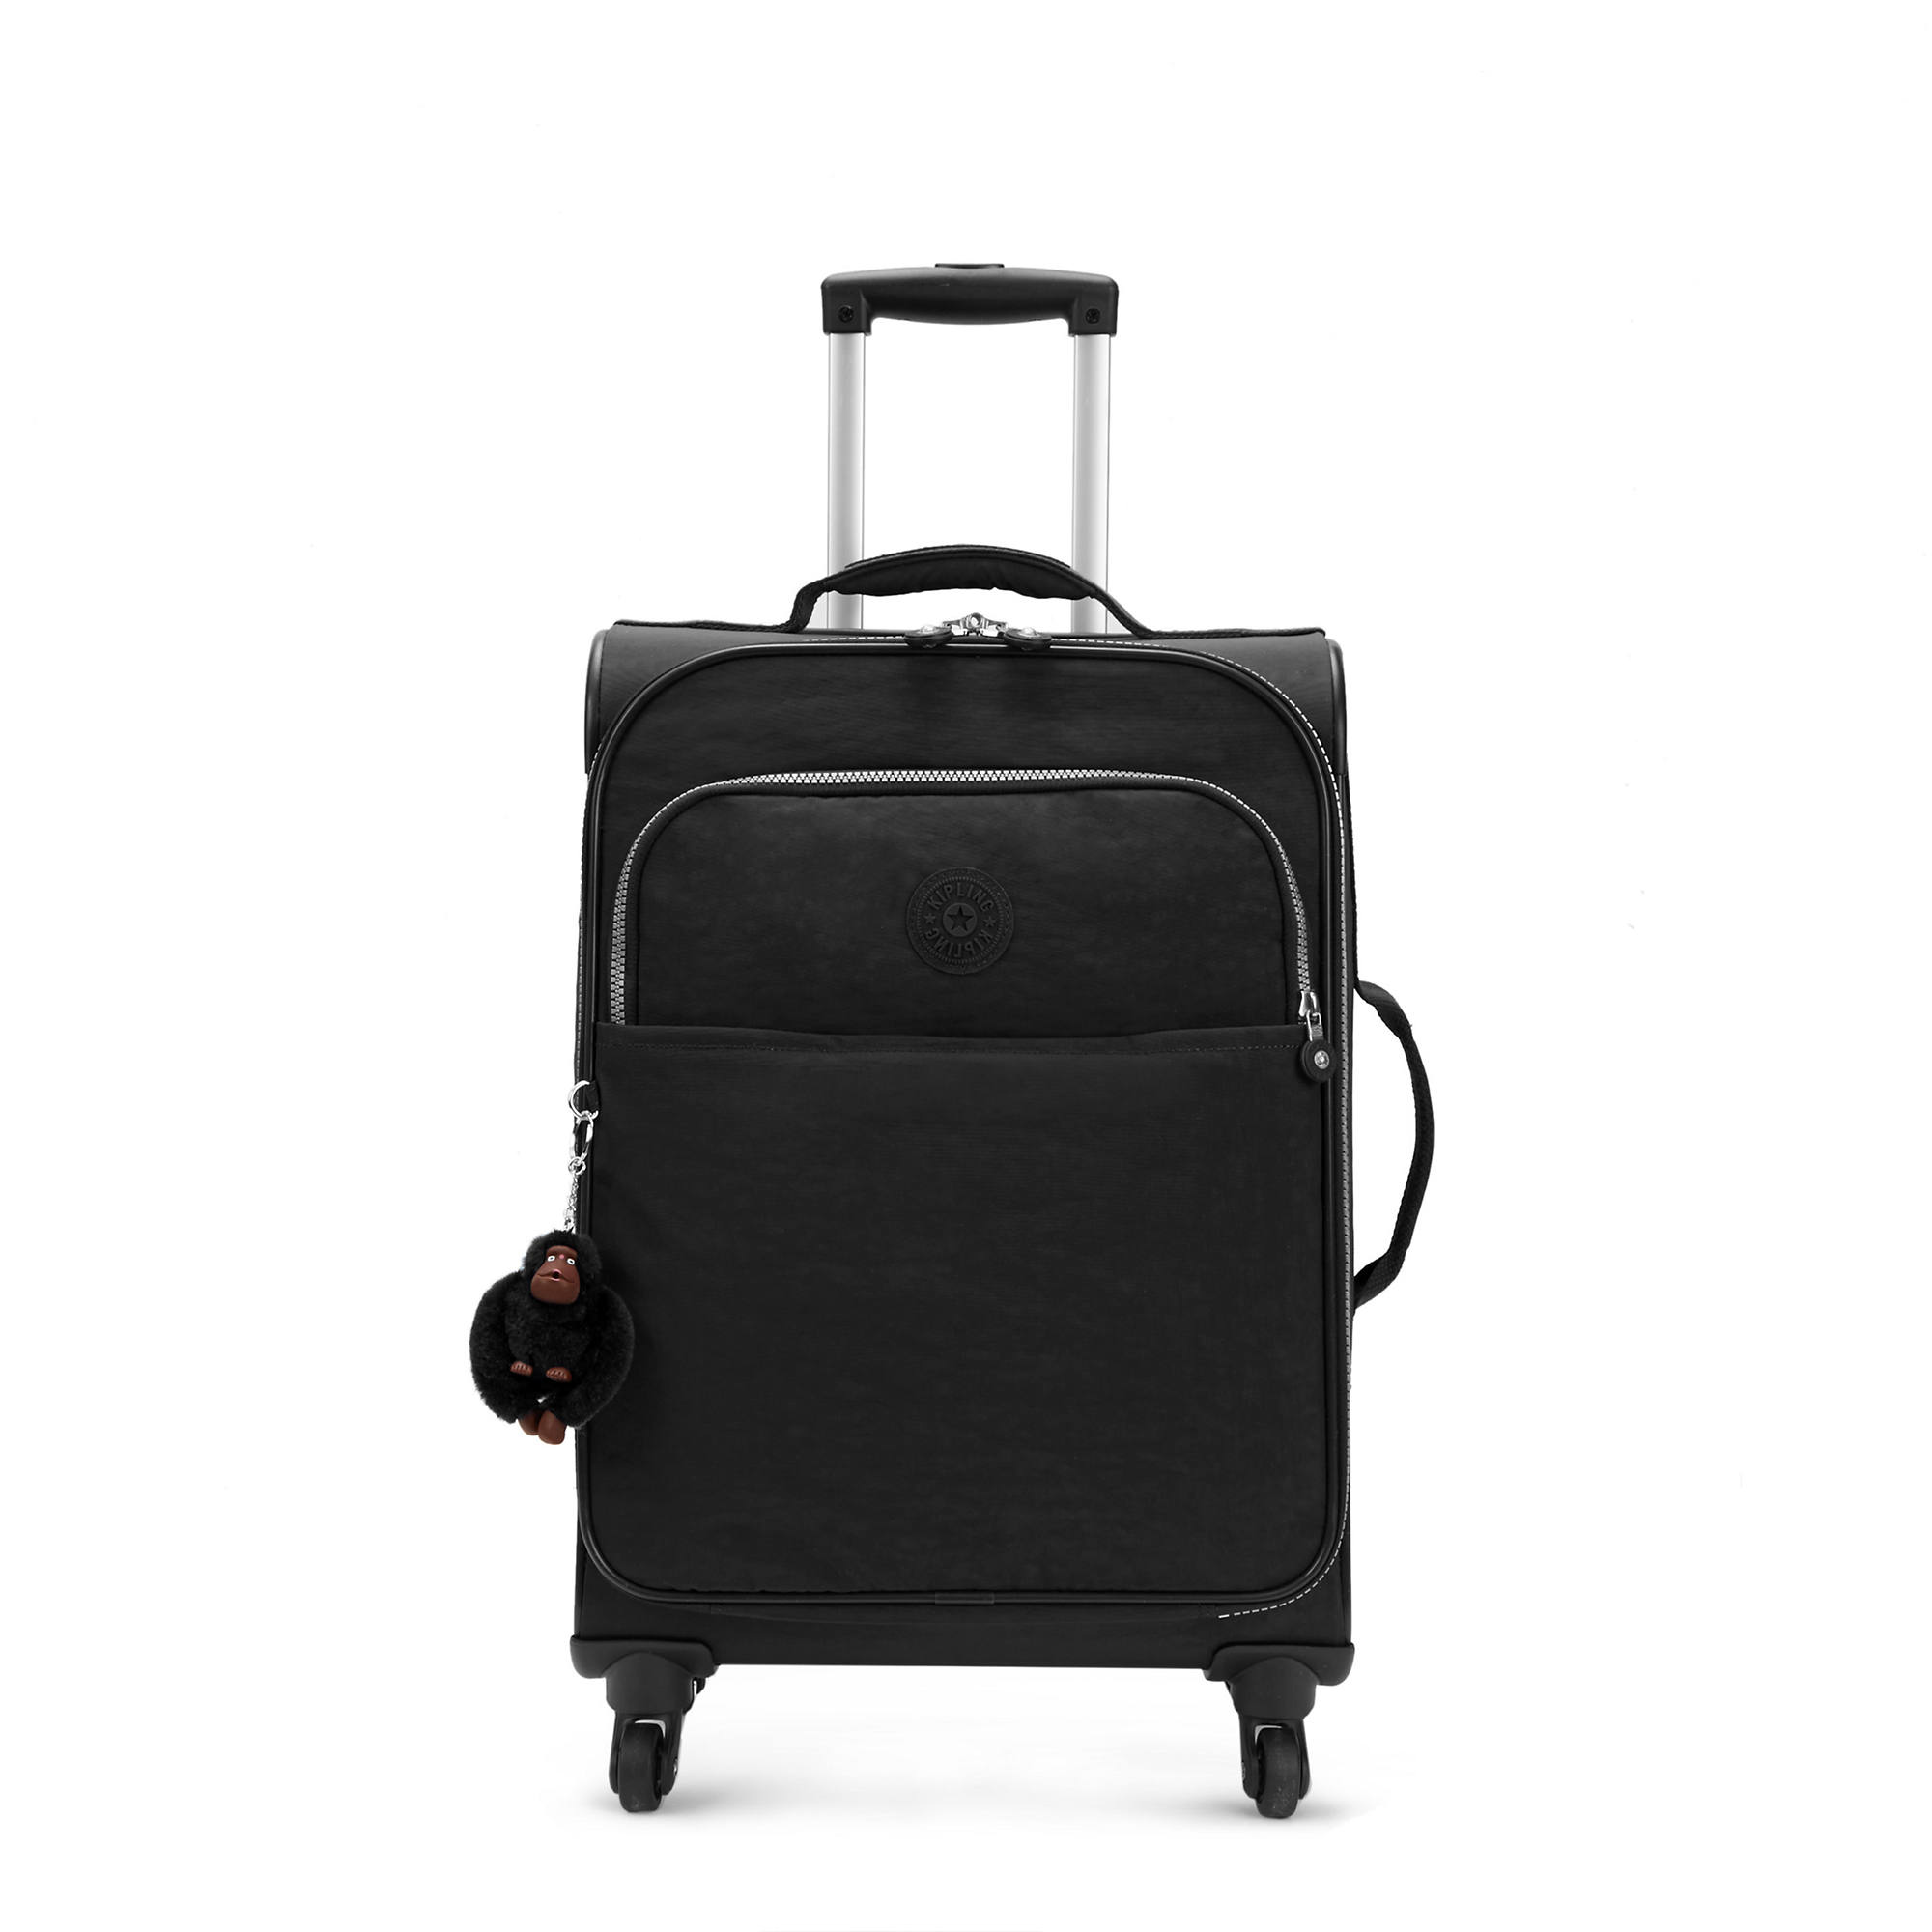 3a0cf0f6d3 Parker Small Carry-On Rolling Luggage,Black Classic,large